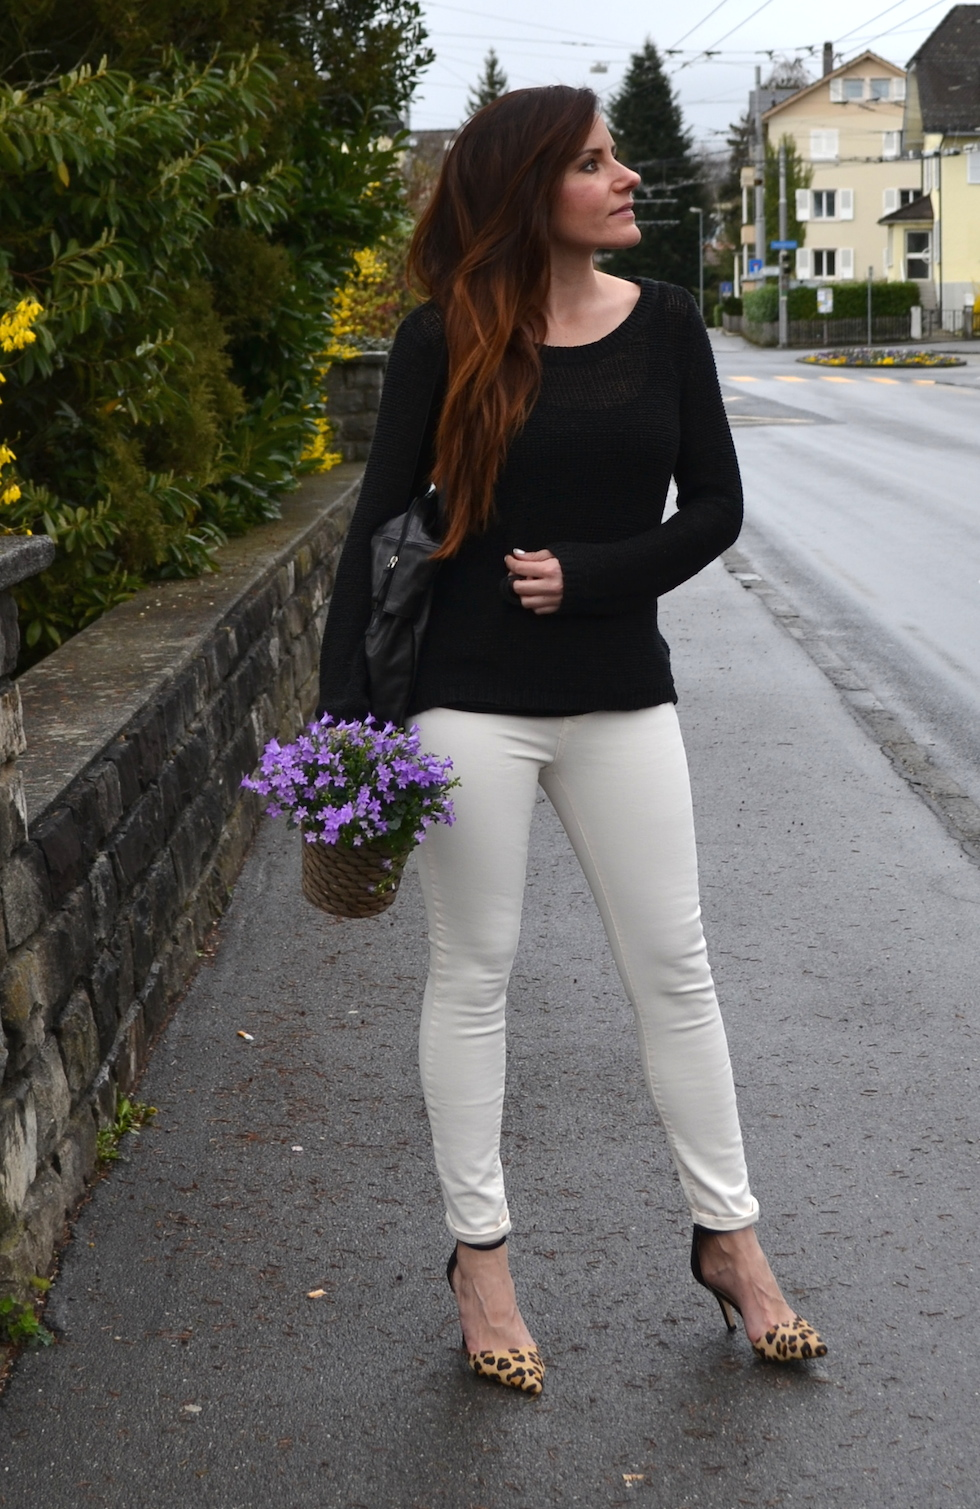 white jeans, leo pumps, knitted pullover black, fashionblog europe